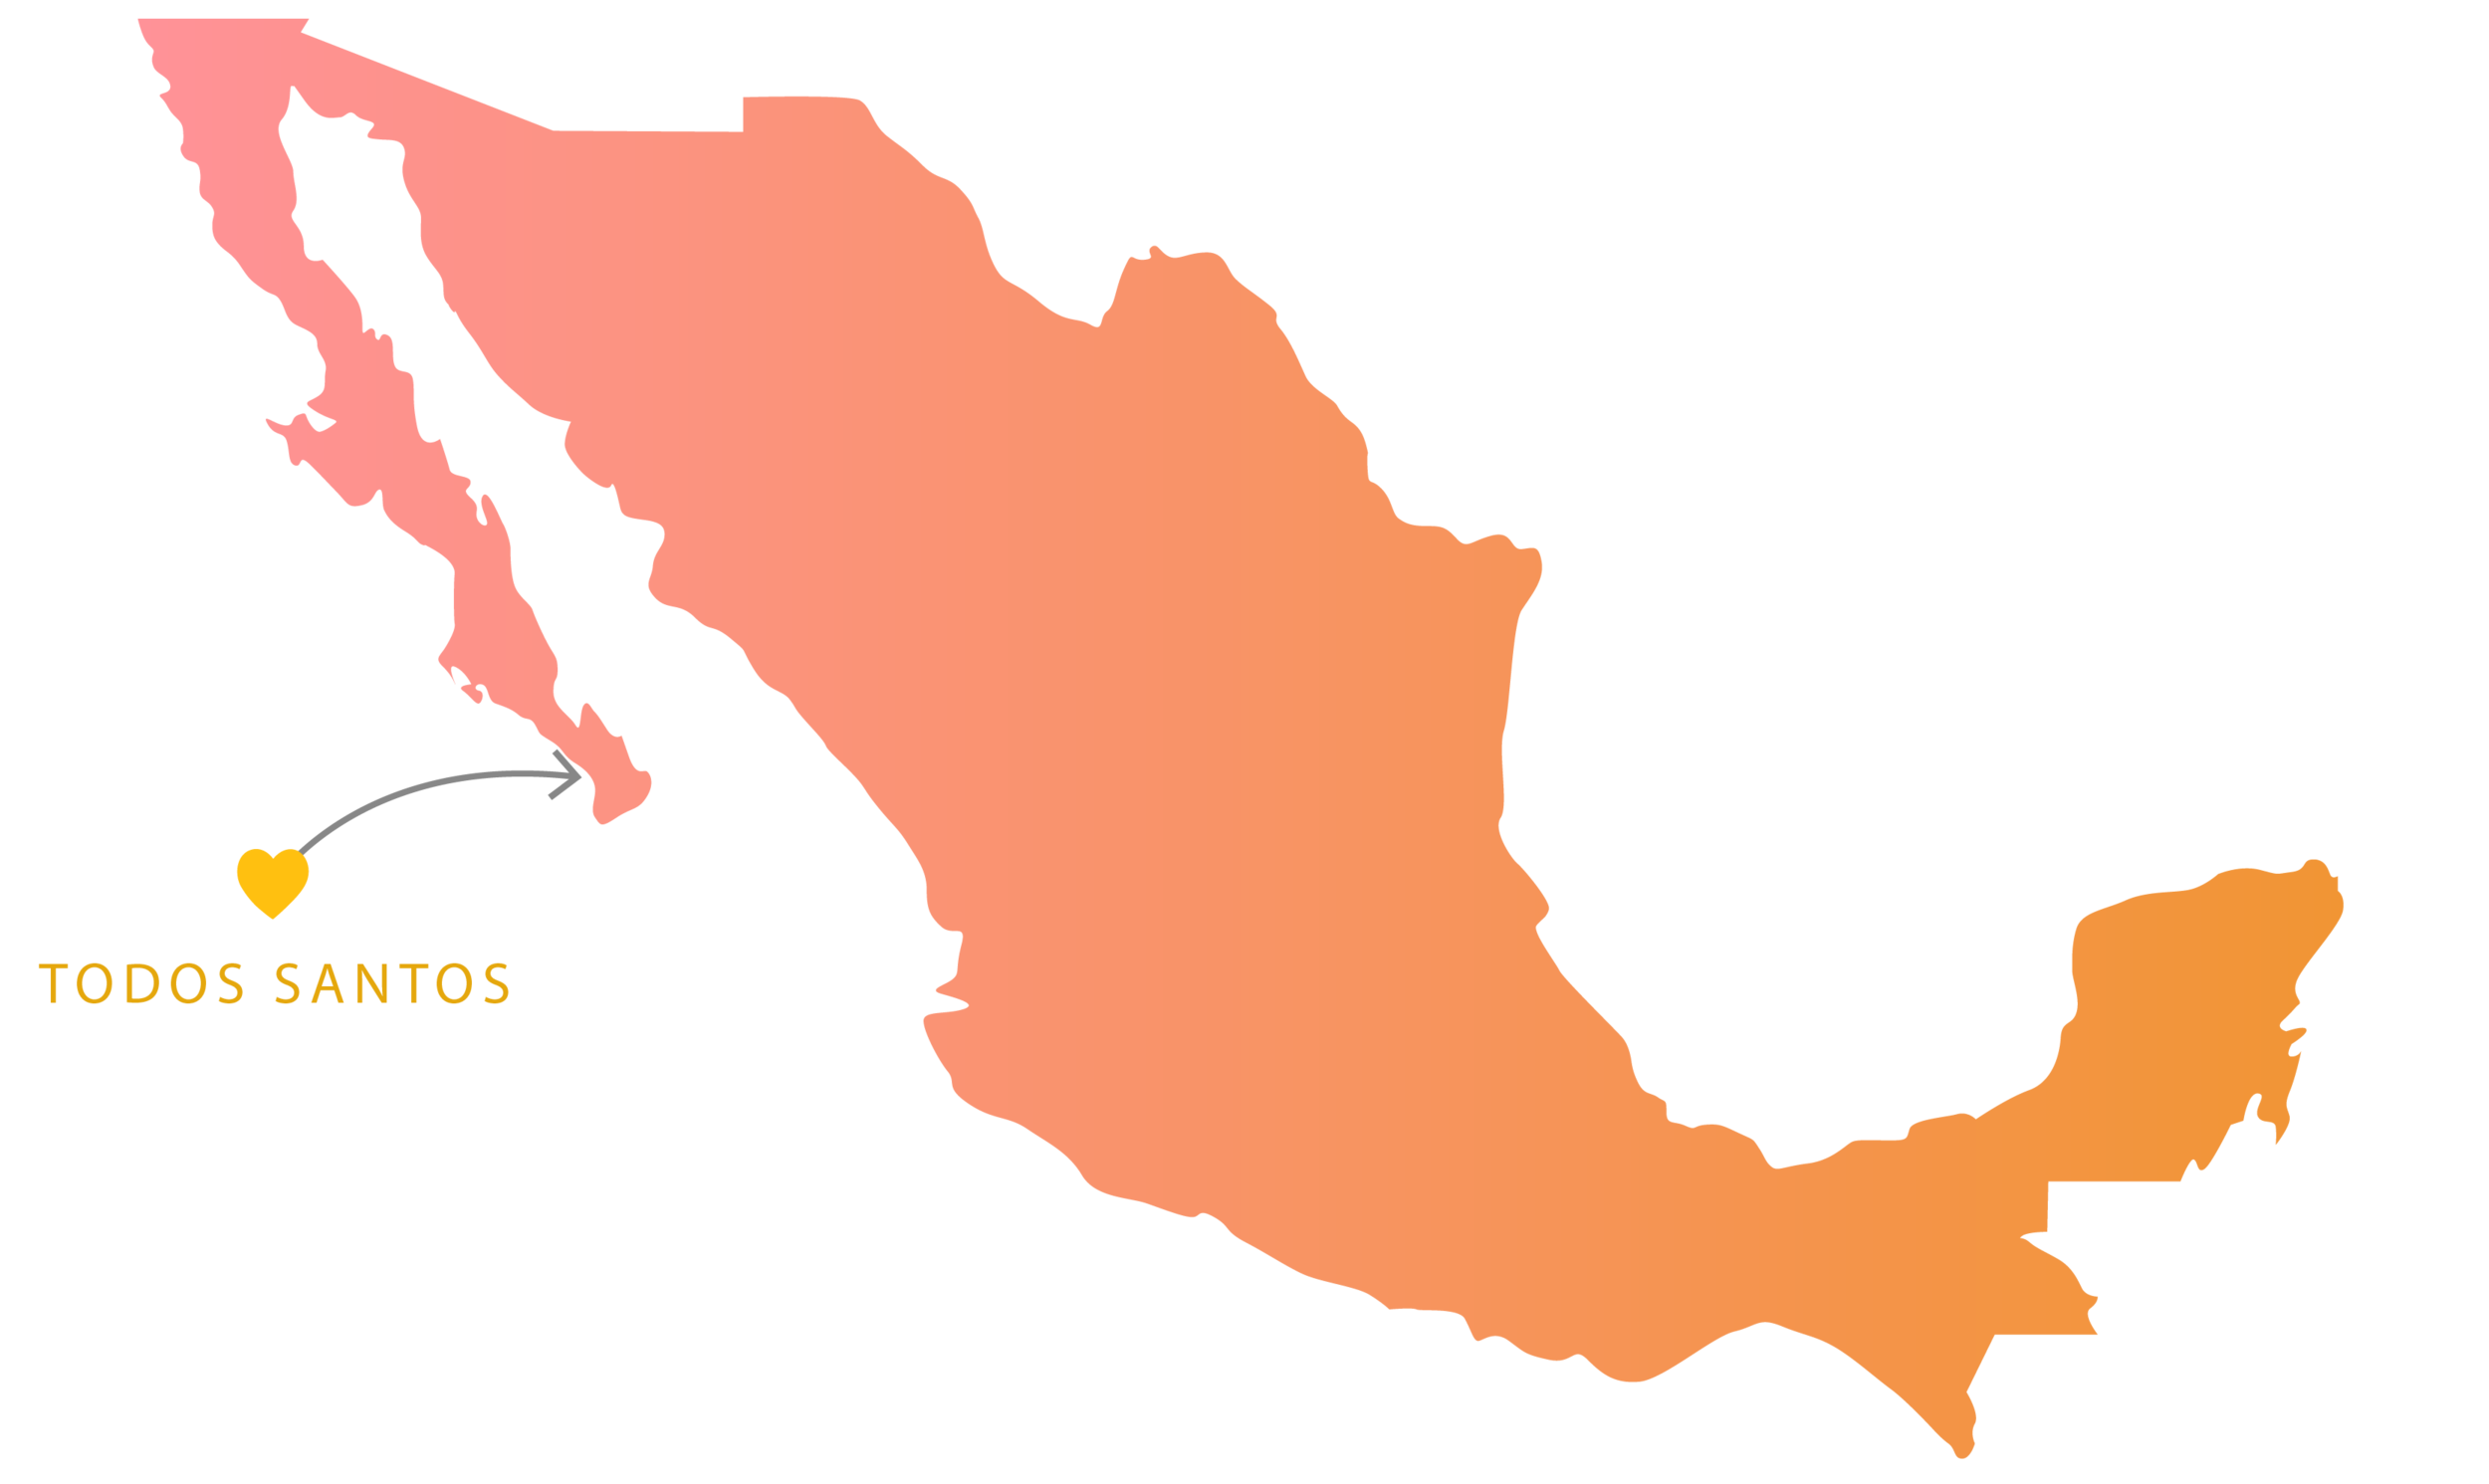 mexico_outline-01.png